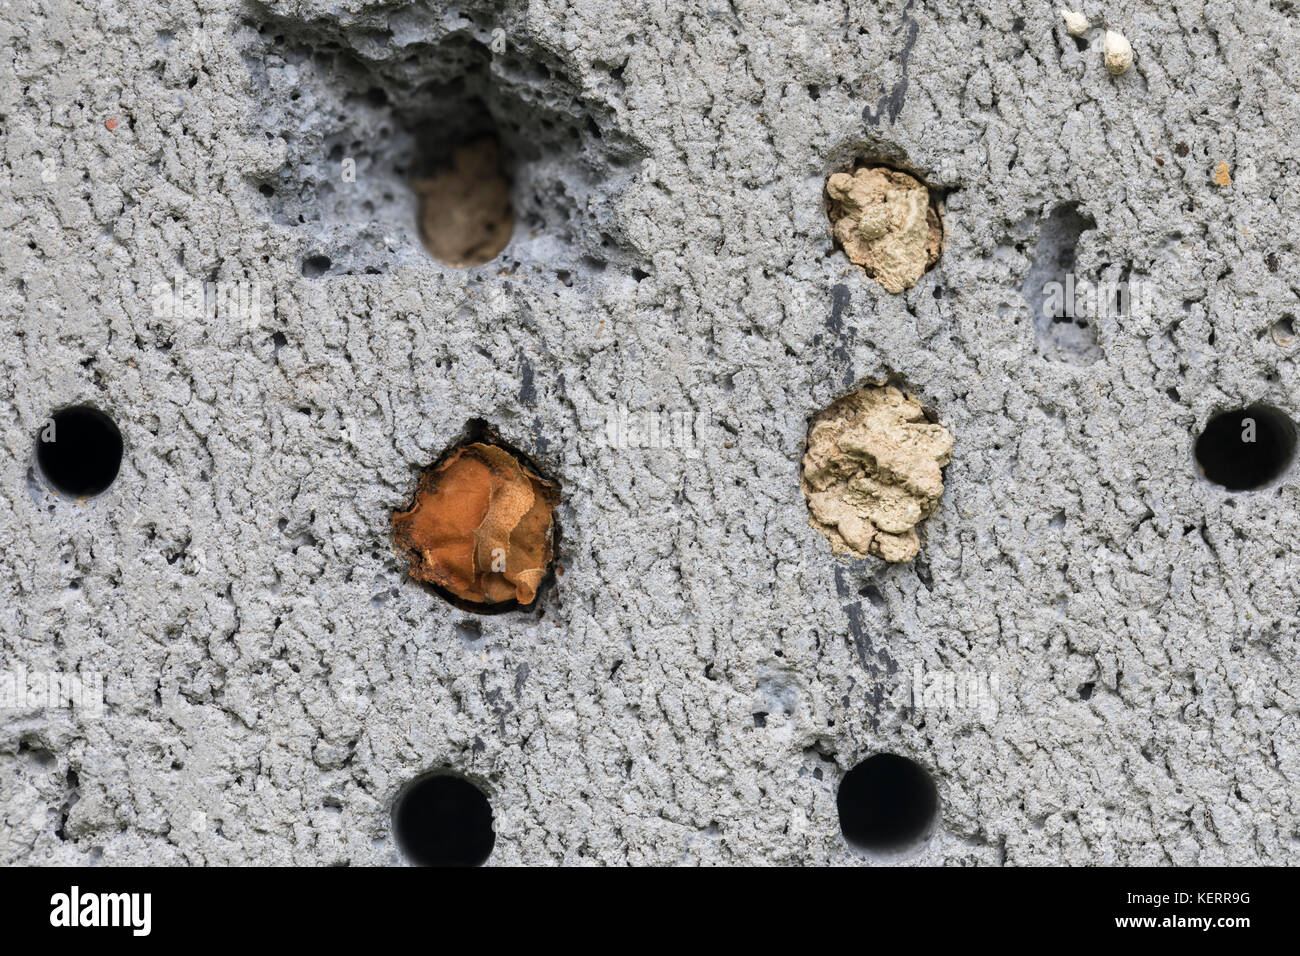 Insect House Plugged Cells in Thermal Block Cornwall; UK - Stock Image